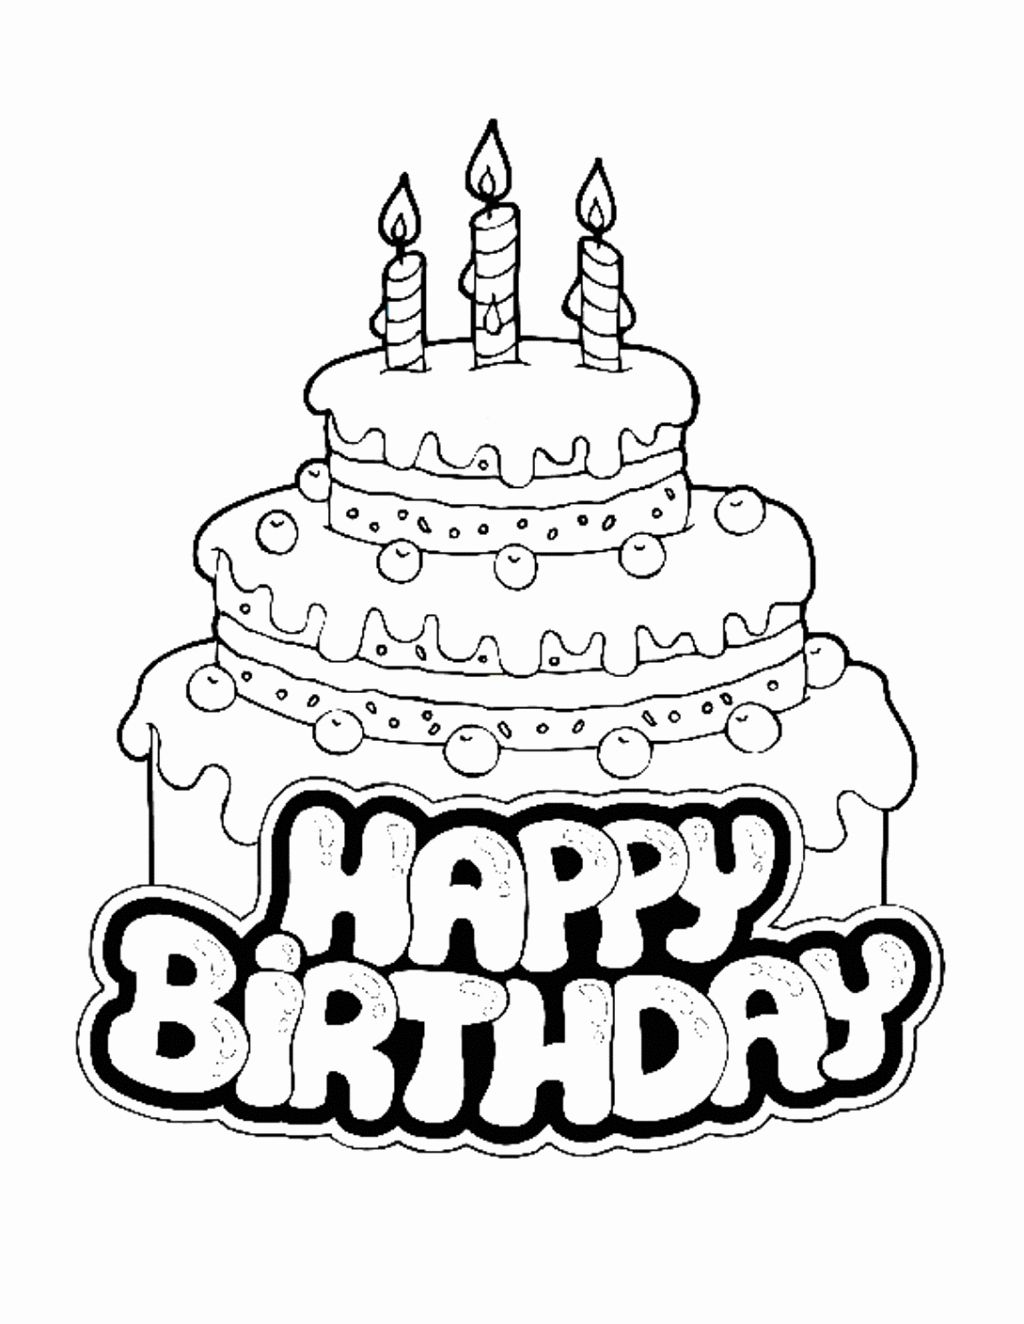 Cake Printable Coloring Pages Lovely Coloring Book World Birthday Cake Coloring Happy Birthday Printable Happy Birthday Coloring Pages Birthday Coloring Pages